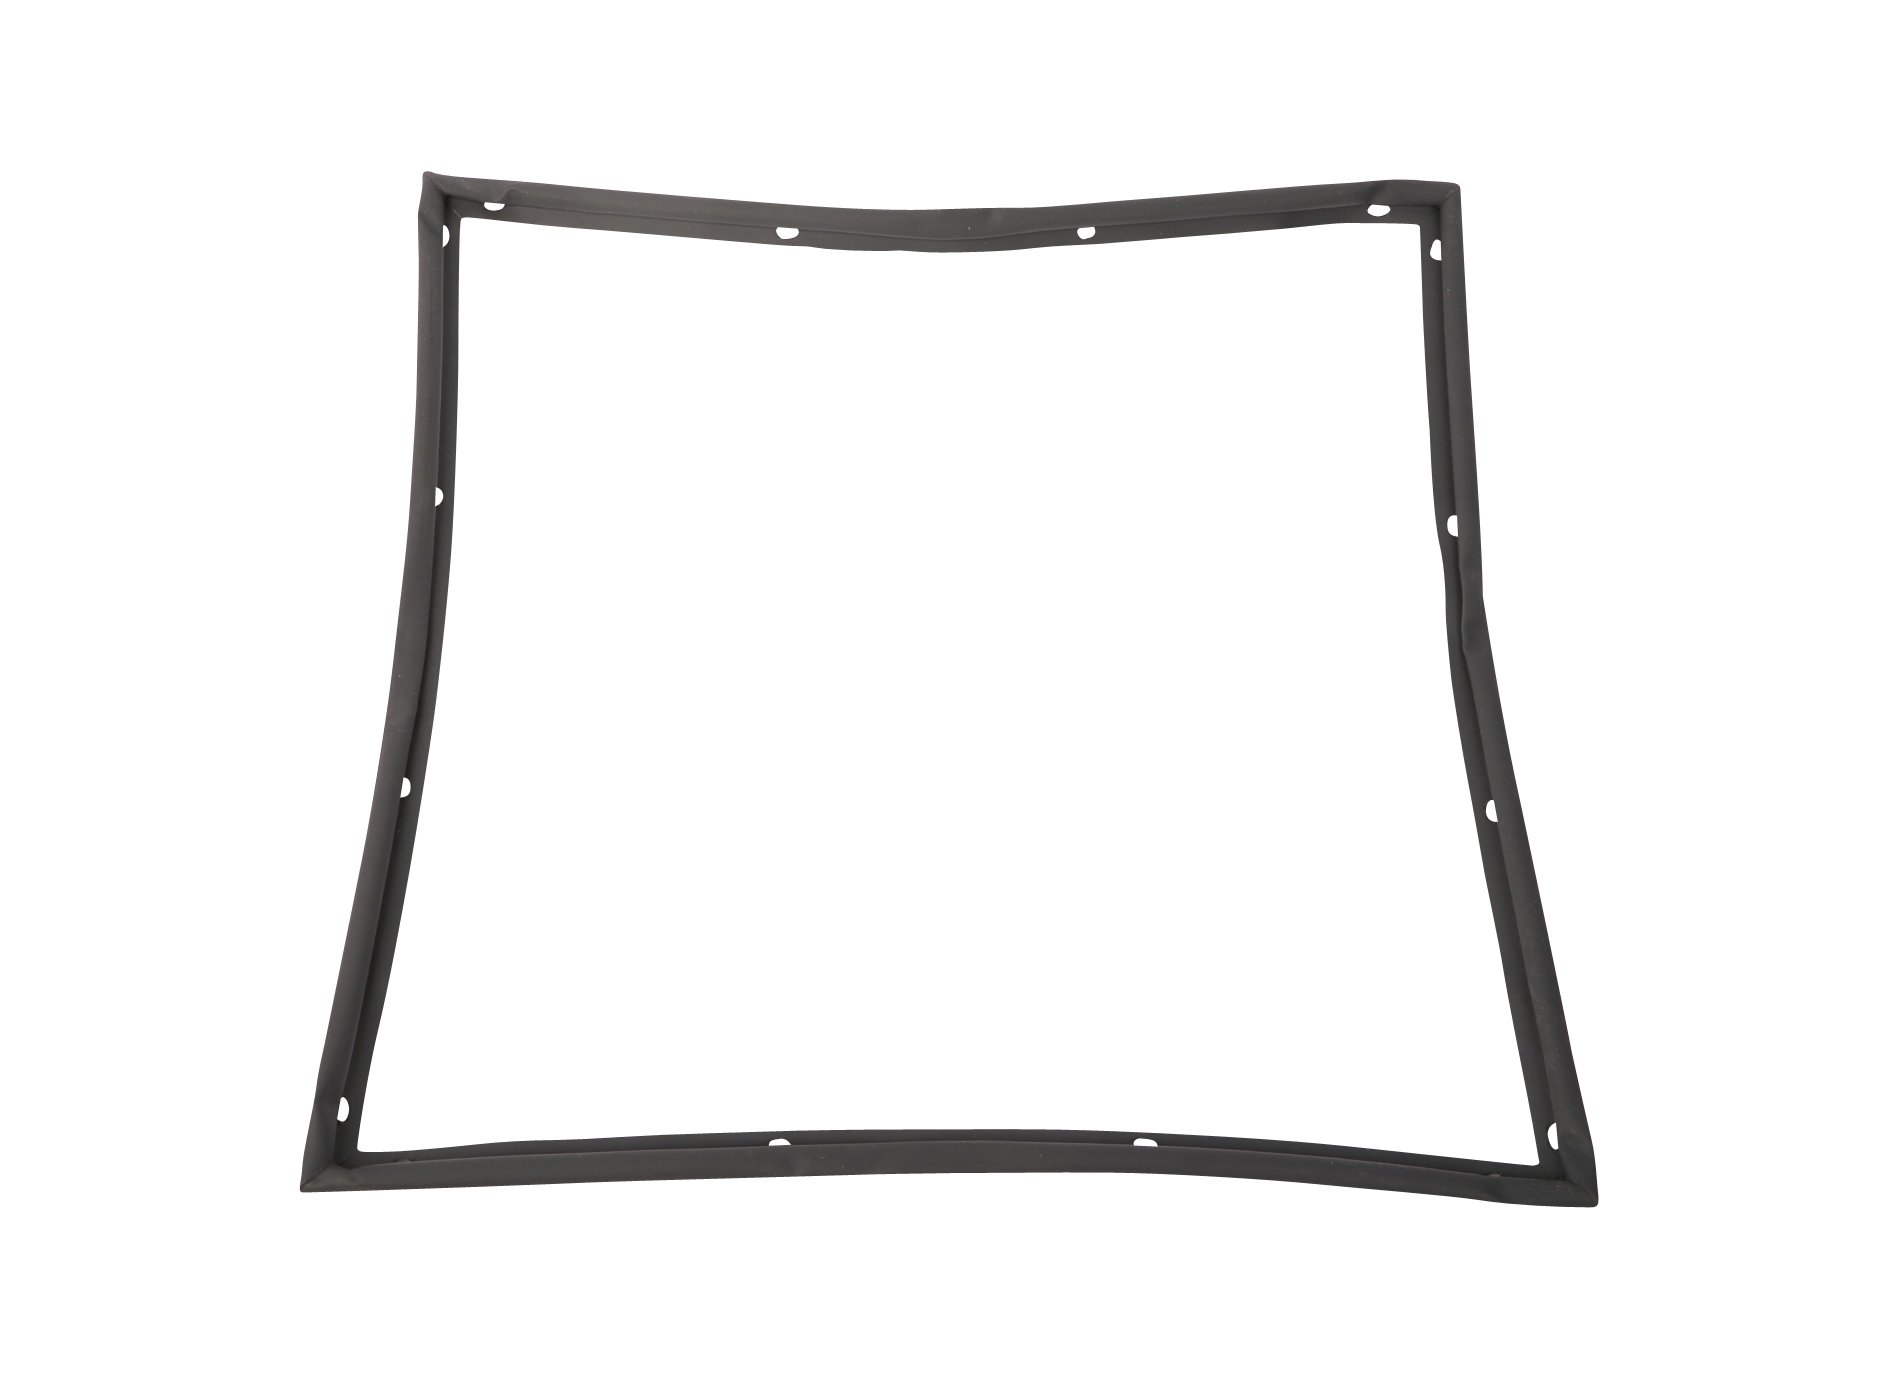 Intermetro RPC06-331 Door Gasket